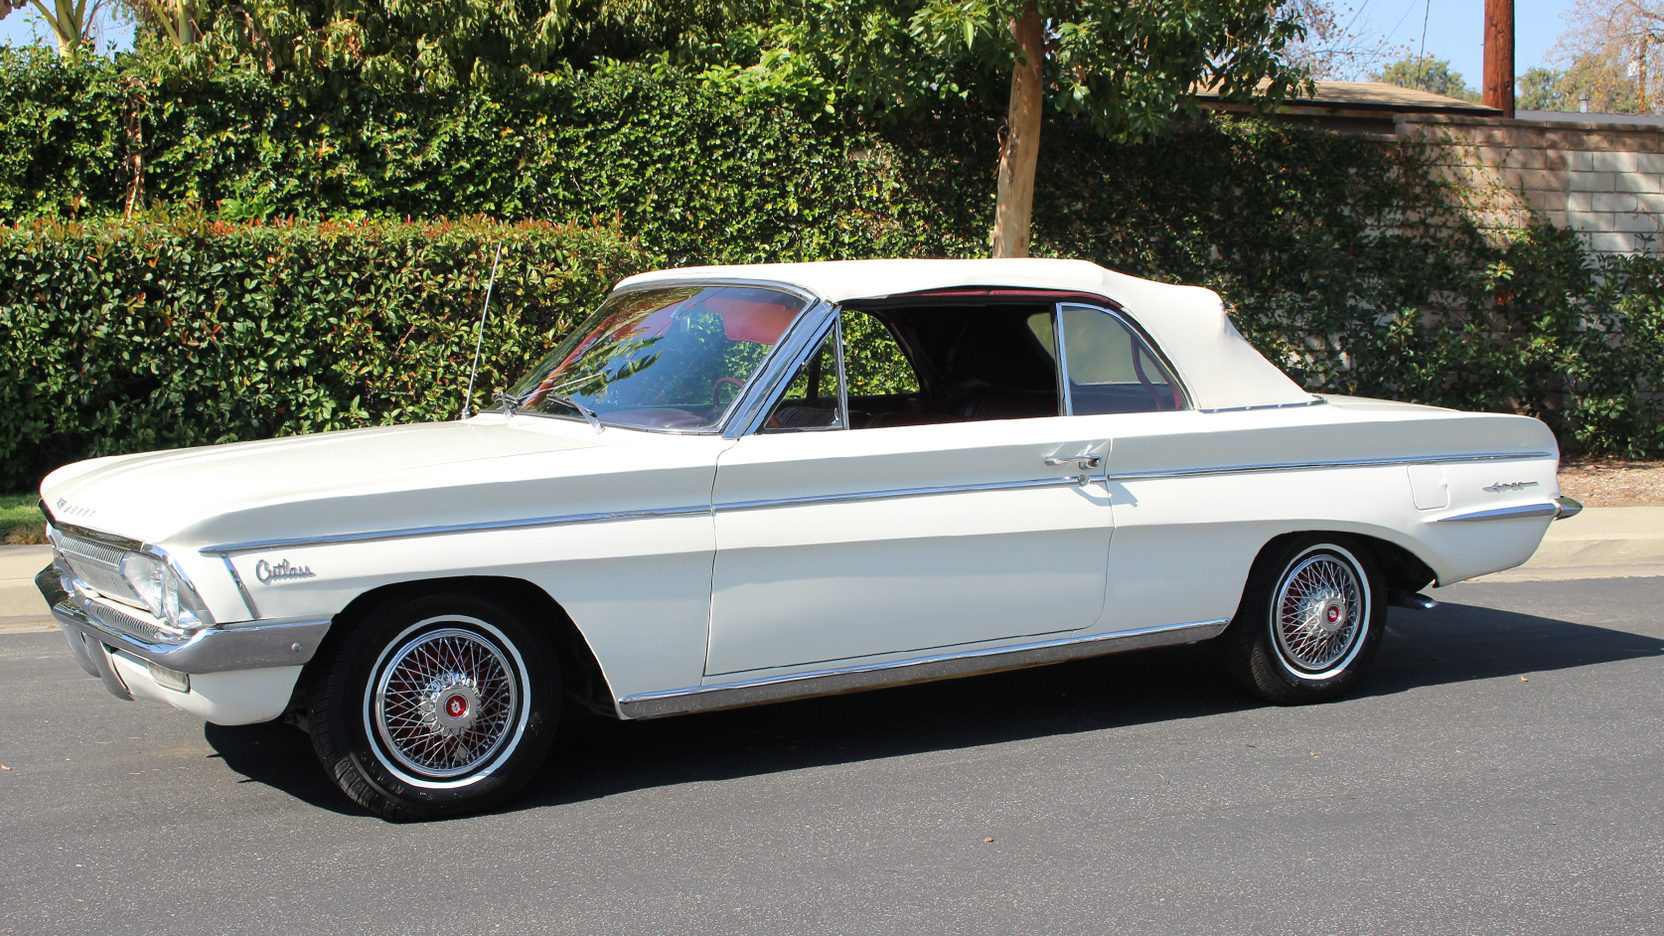 1962 Oldsmobile F85 Convertible - Year of Clean Water